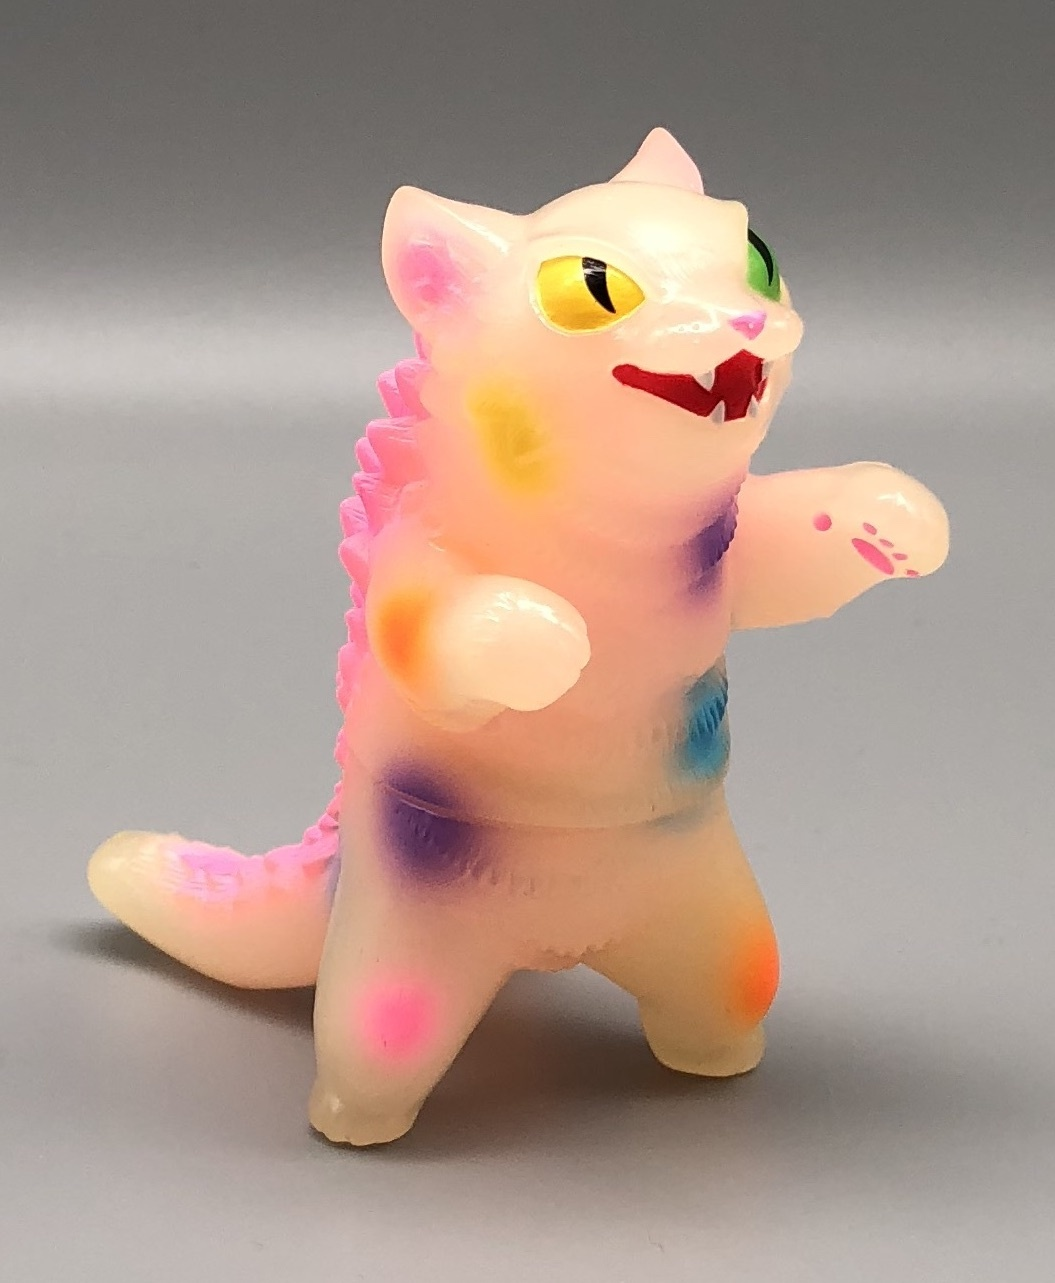 Max Toy GID (Glow in Dark) Polka Dot Negora - Extremely Limited